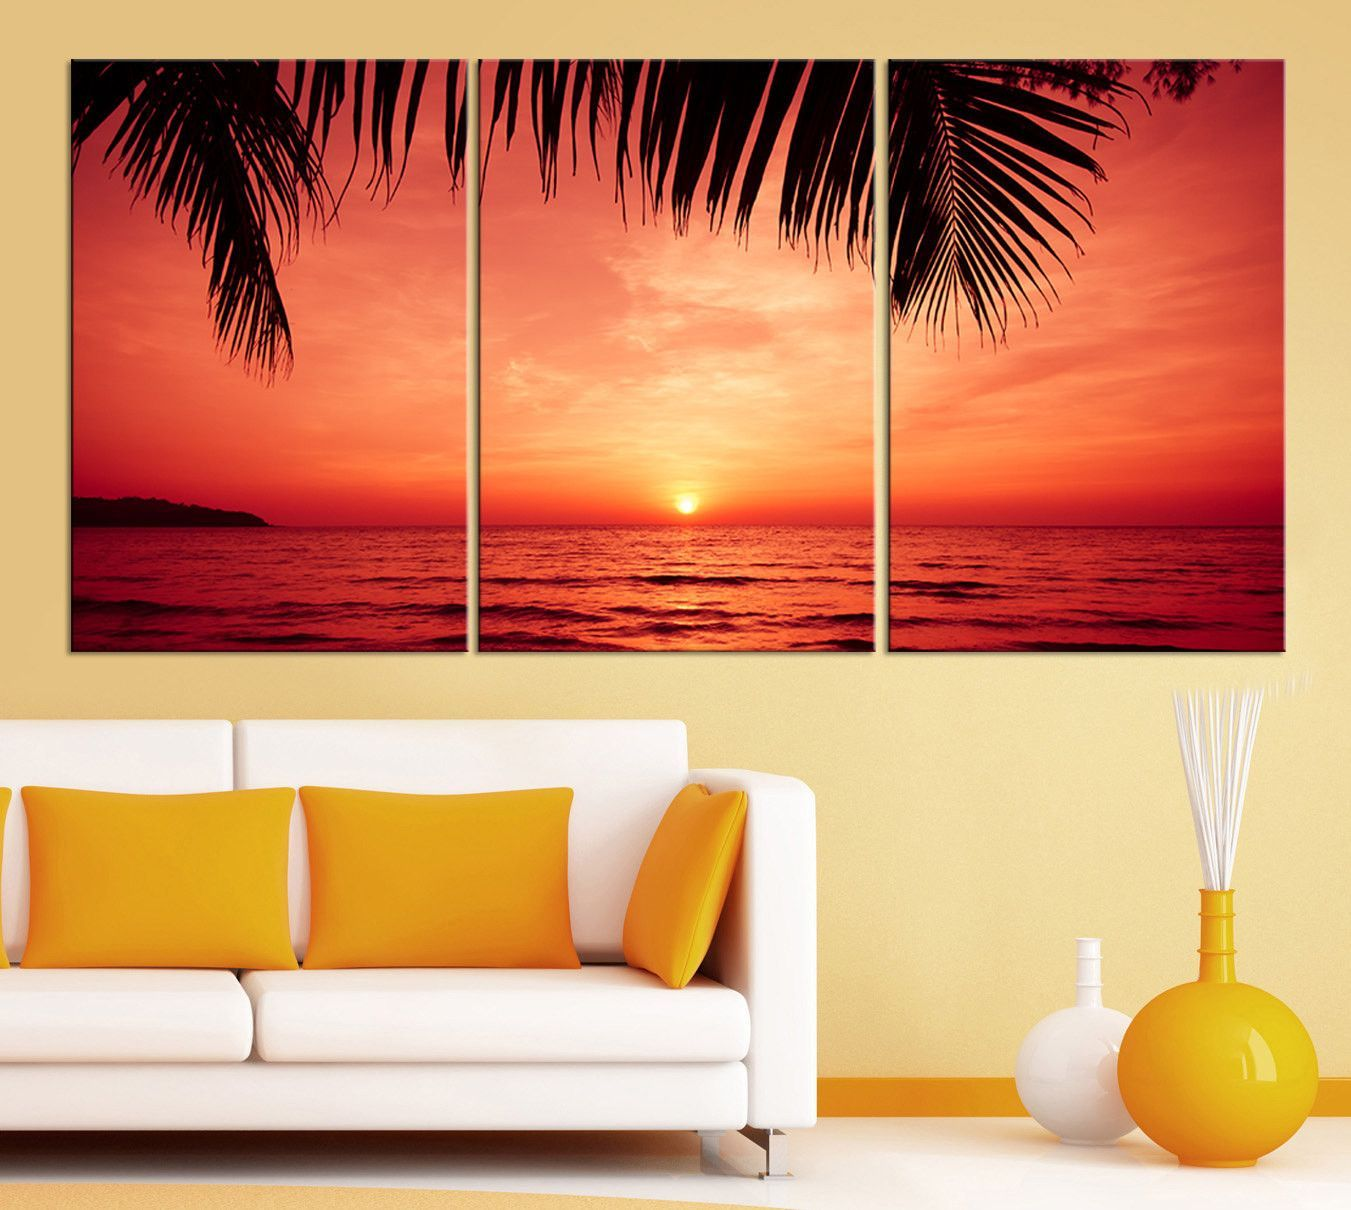 3 Piece Red Sunset and Palms Large Wall Art Canvas Print - X Large ...